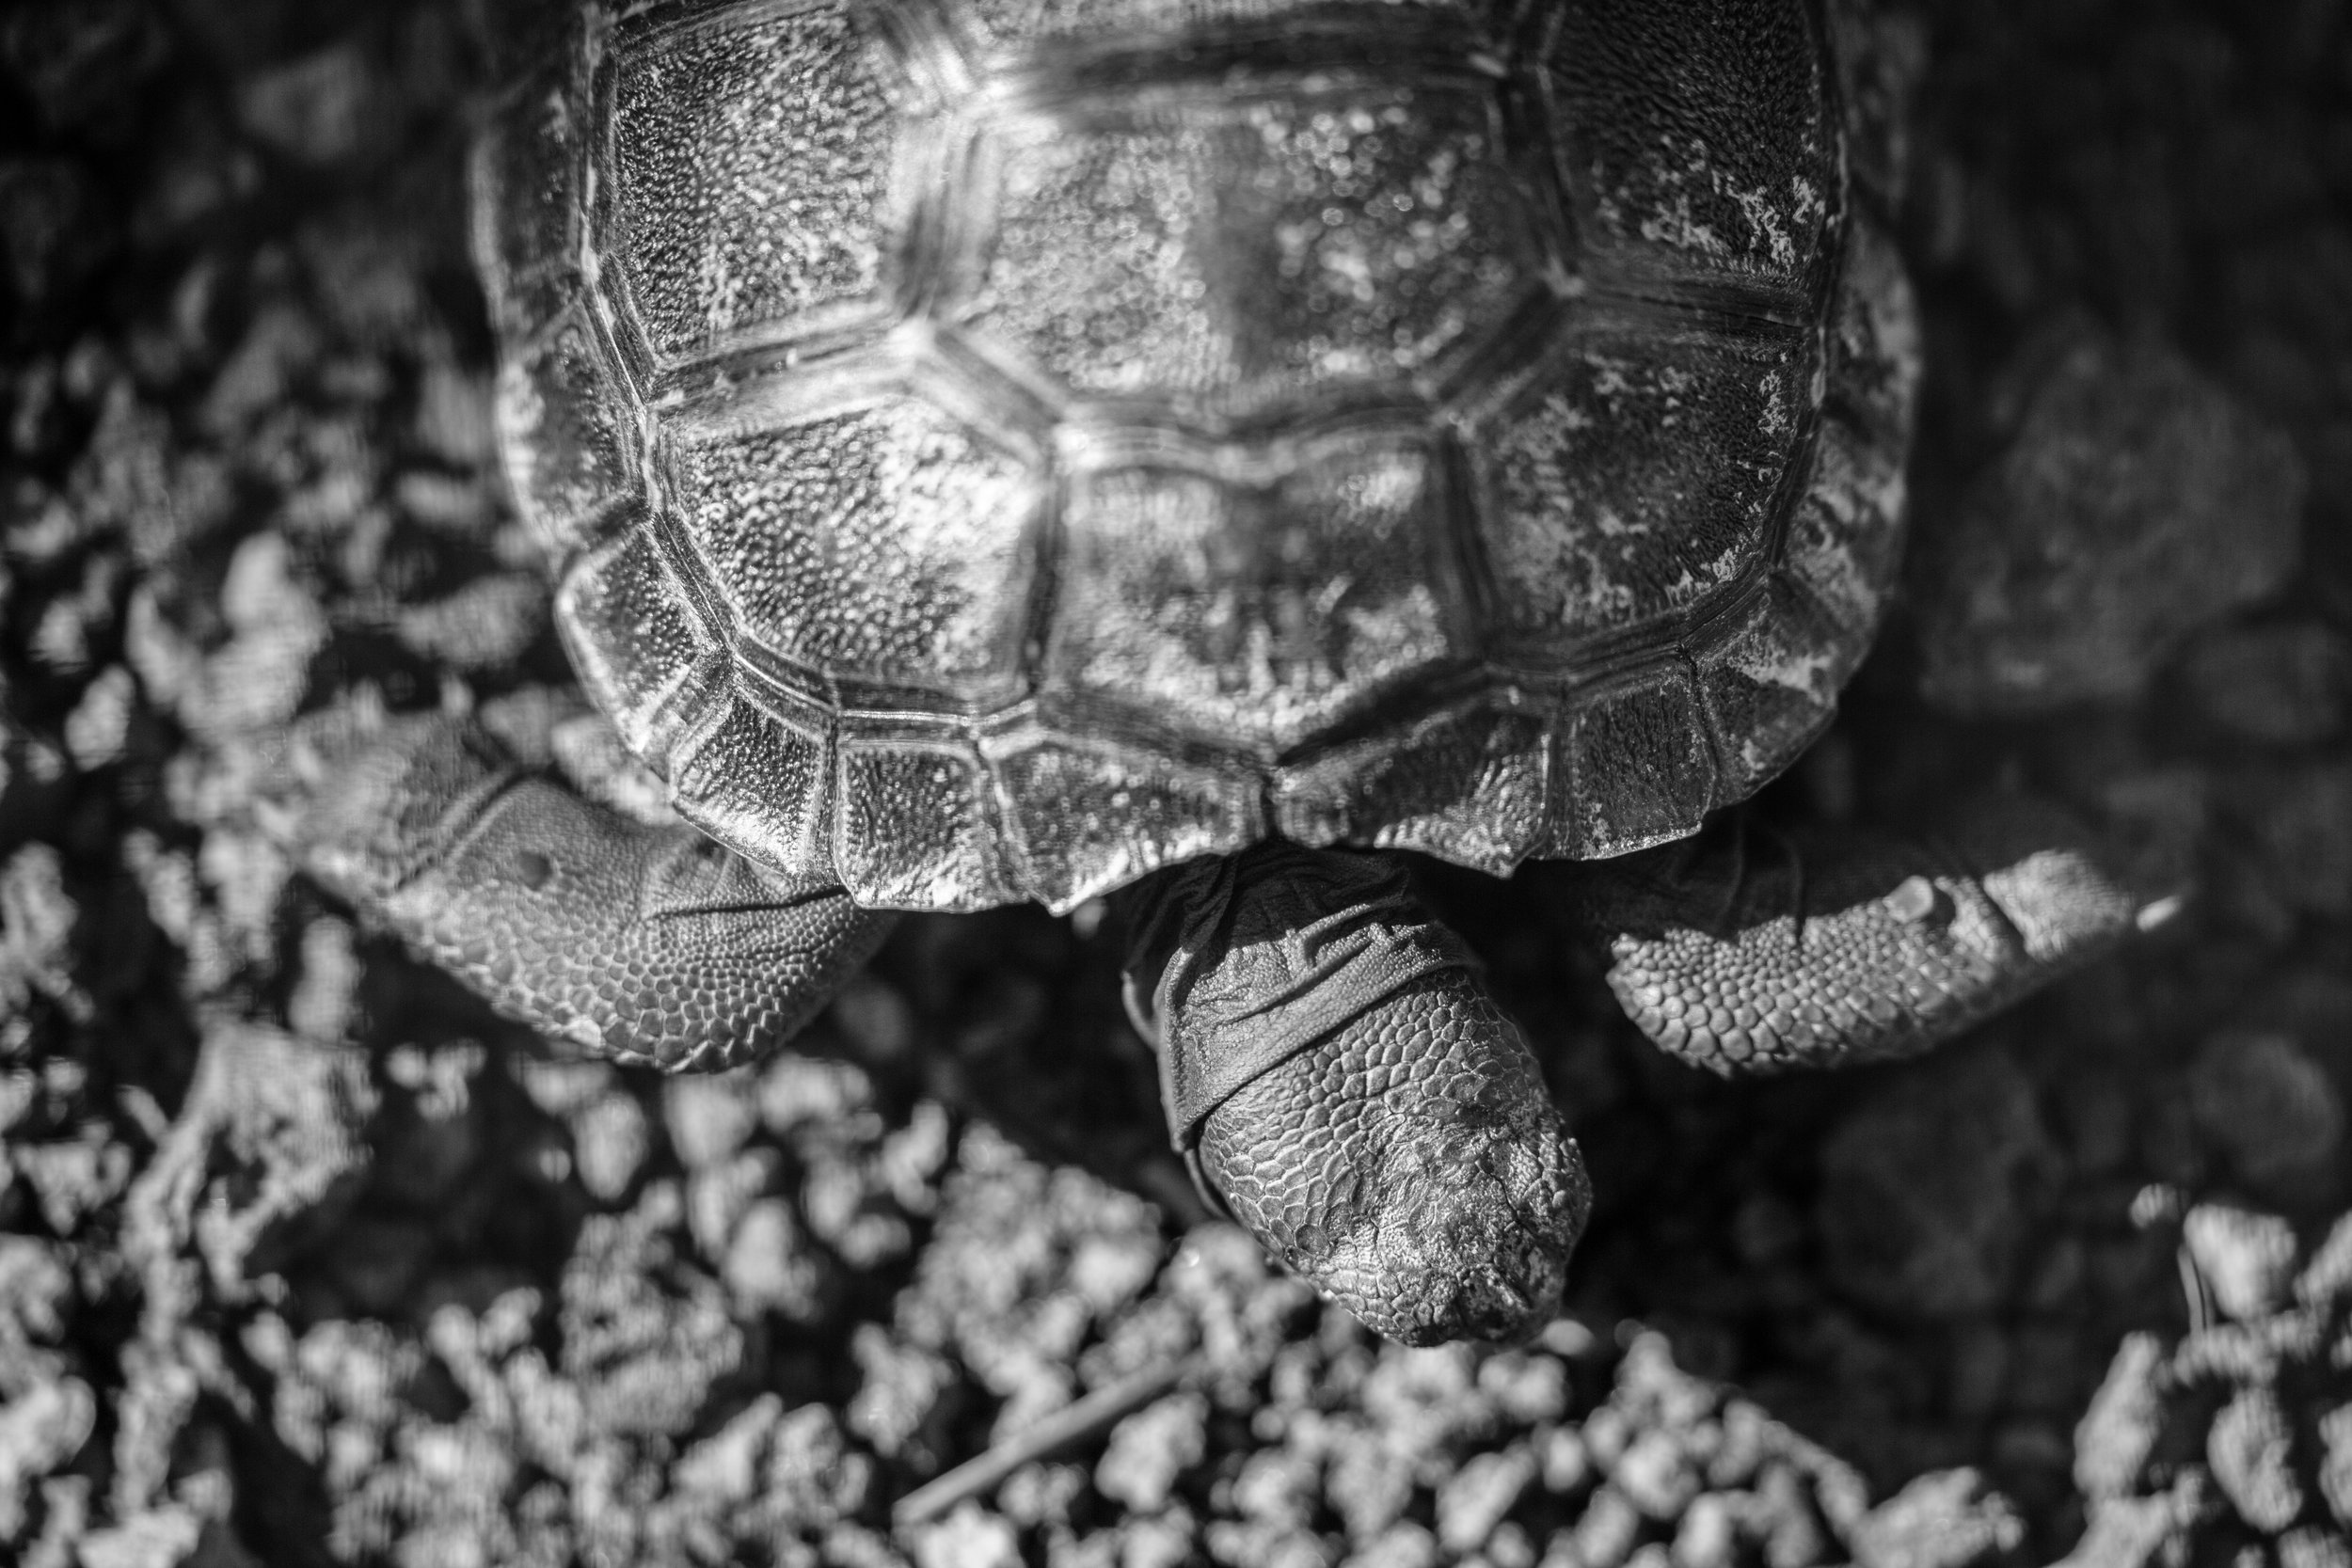 Young tortoises are kept in precincts and protected from threats until they are ready to roam freely